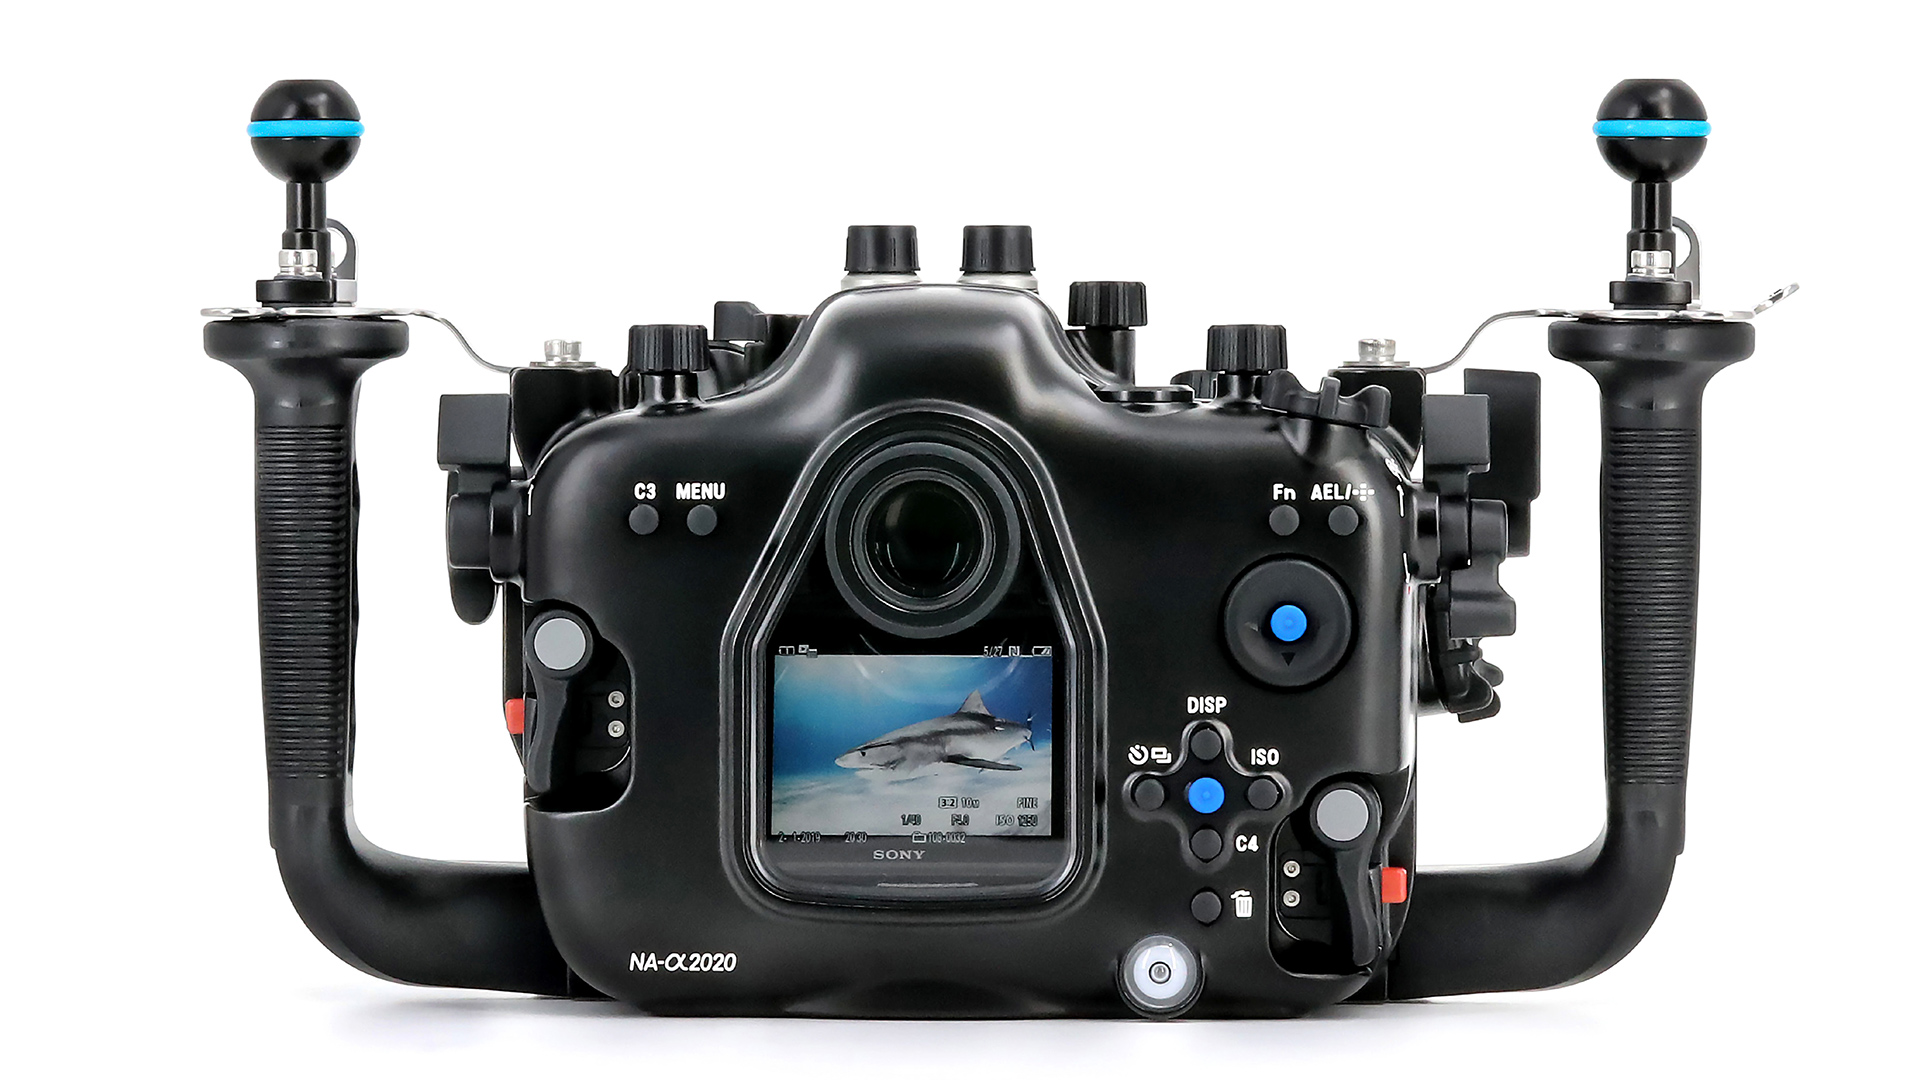 The Nauticam NA-α2020 is the latest housing from the company to support Sony's flagship full-frame mirrorless cameras. Image: Nauticam.